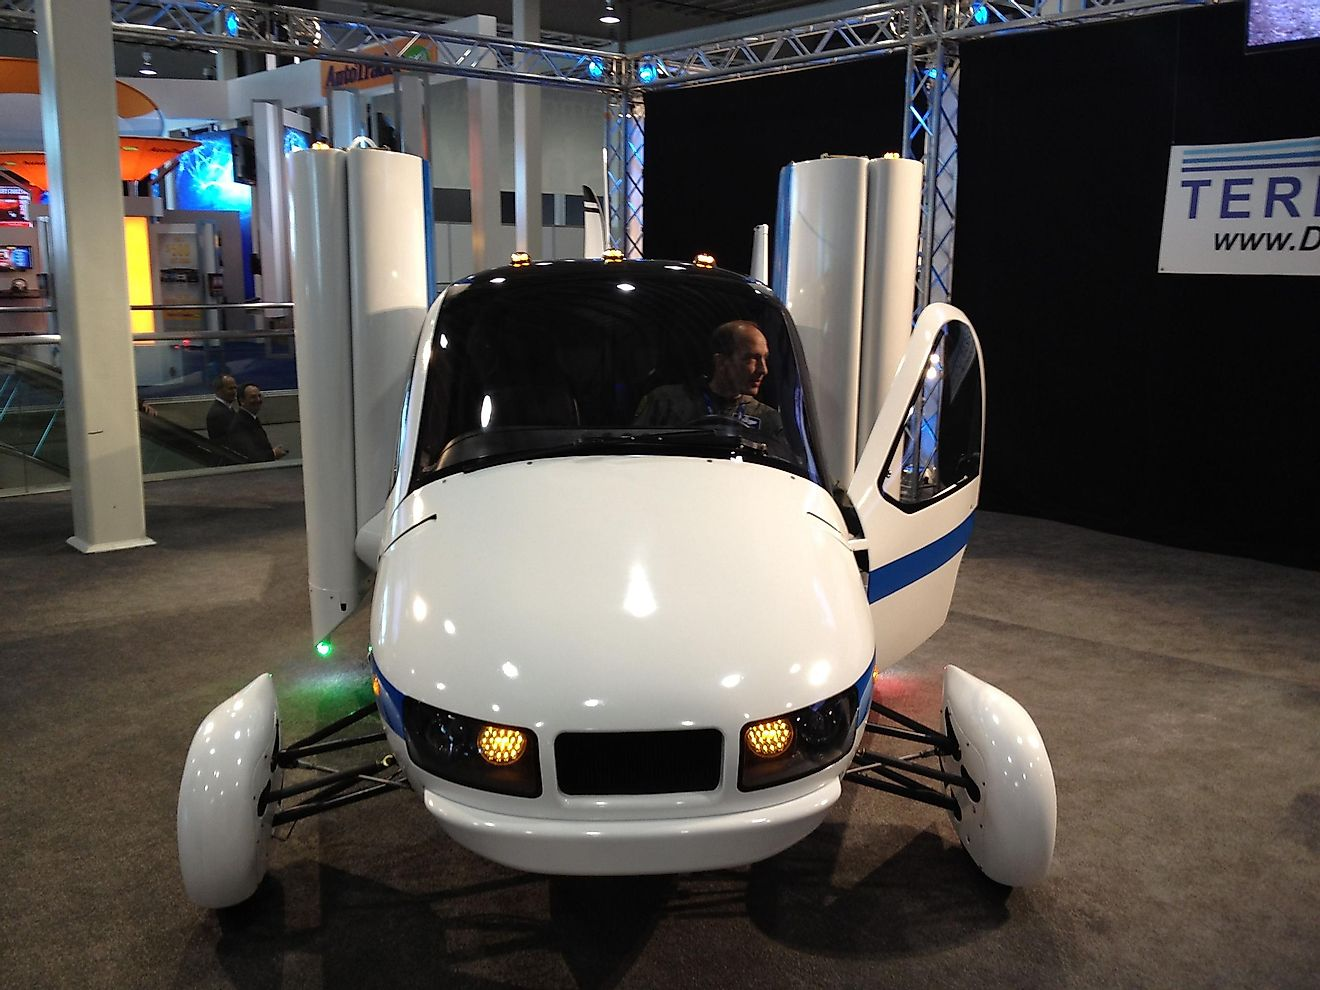 Producing flying cars in incredibly expensive. Image credit: wikimedia.org